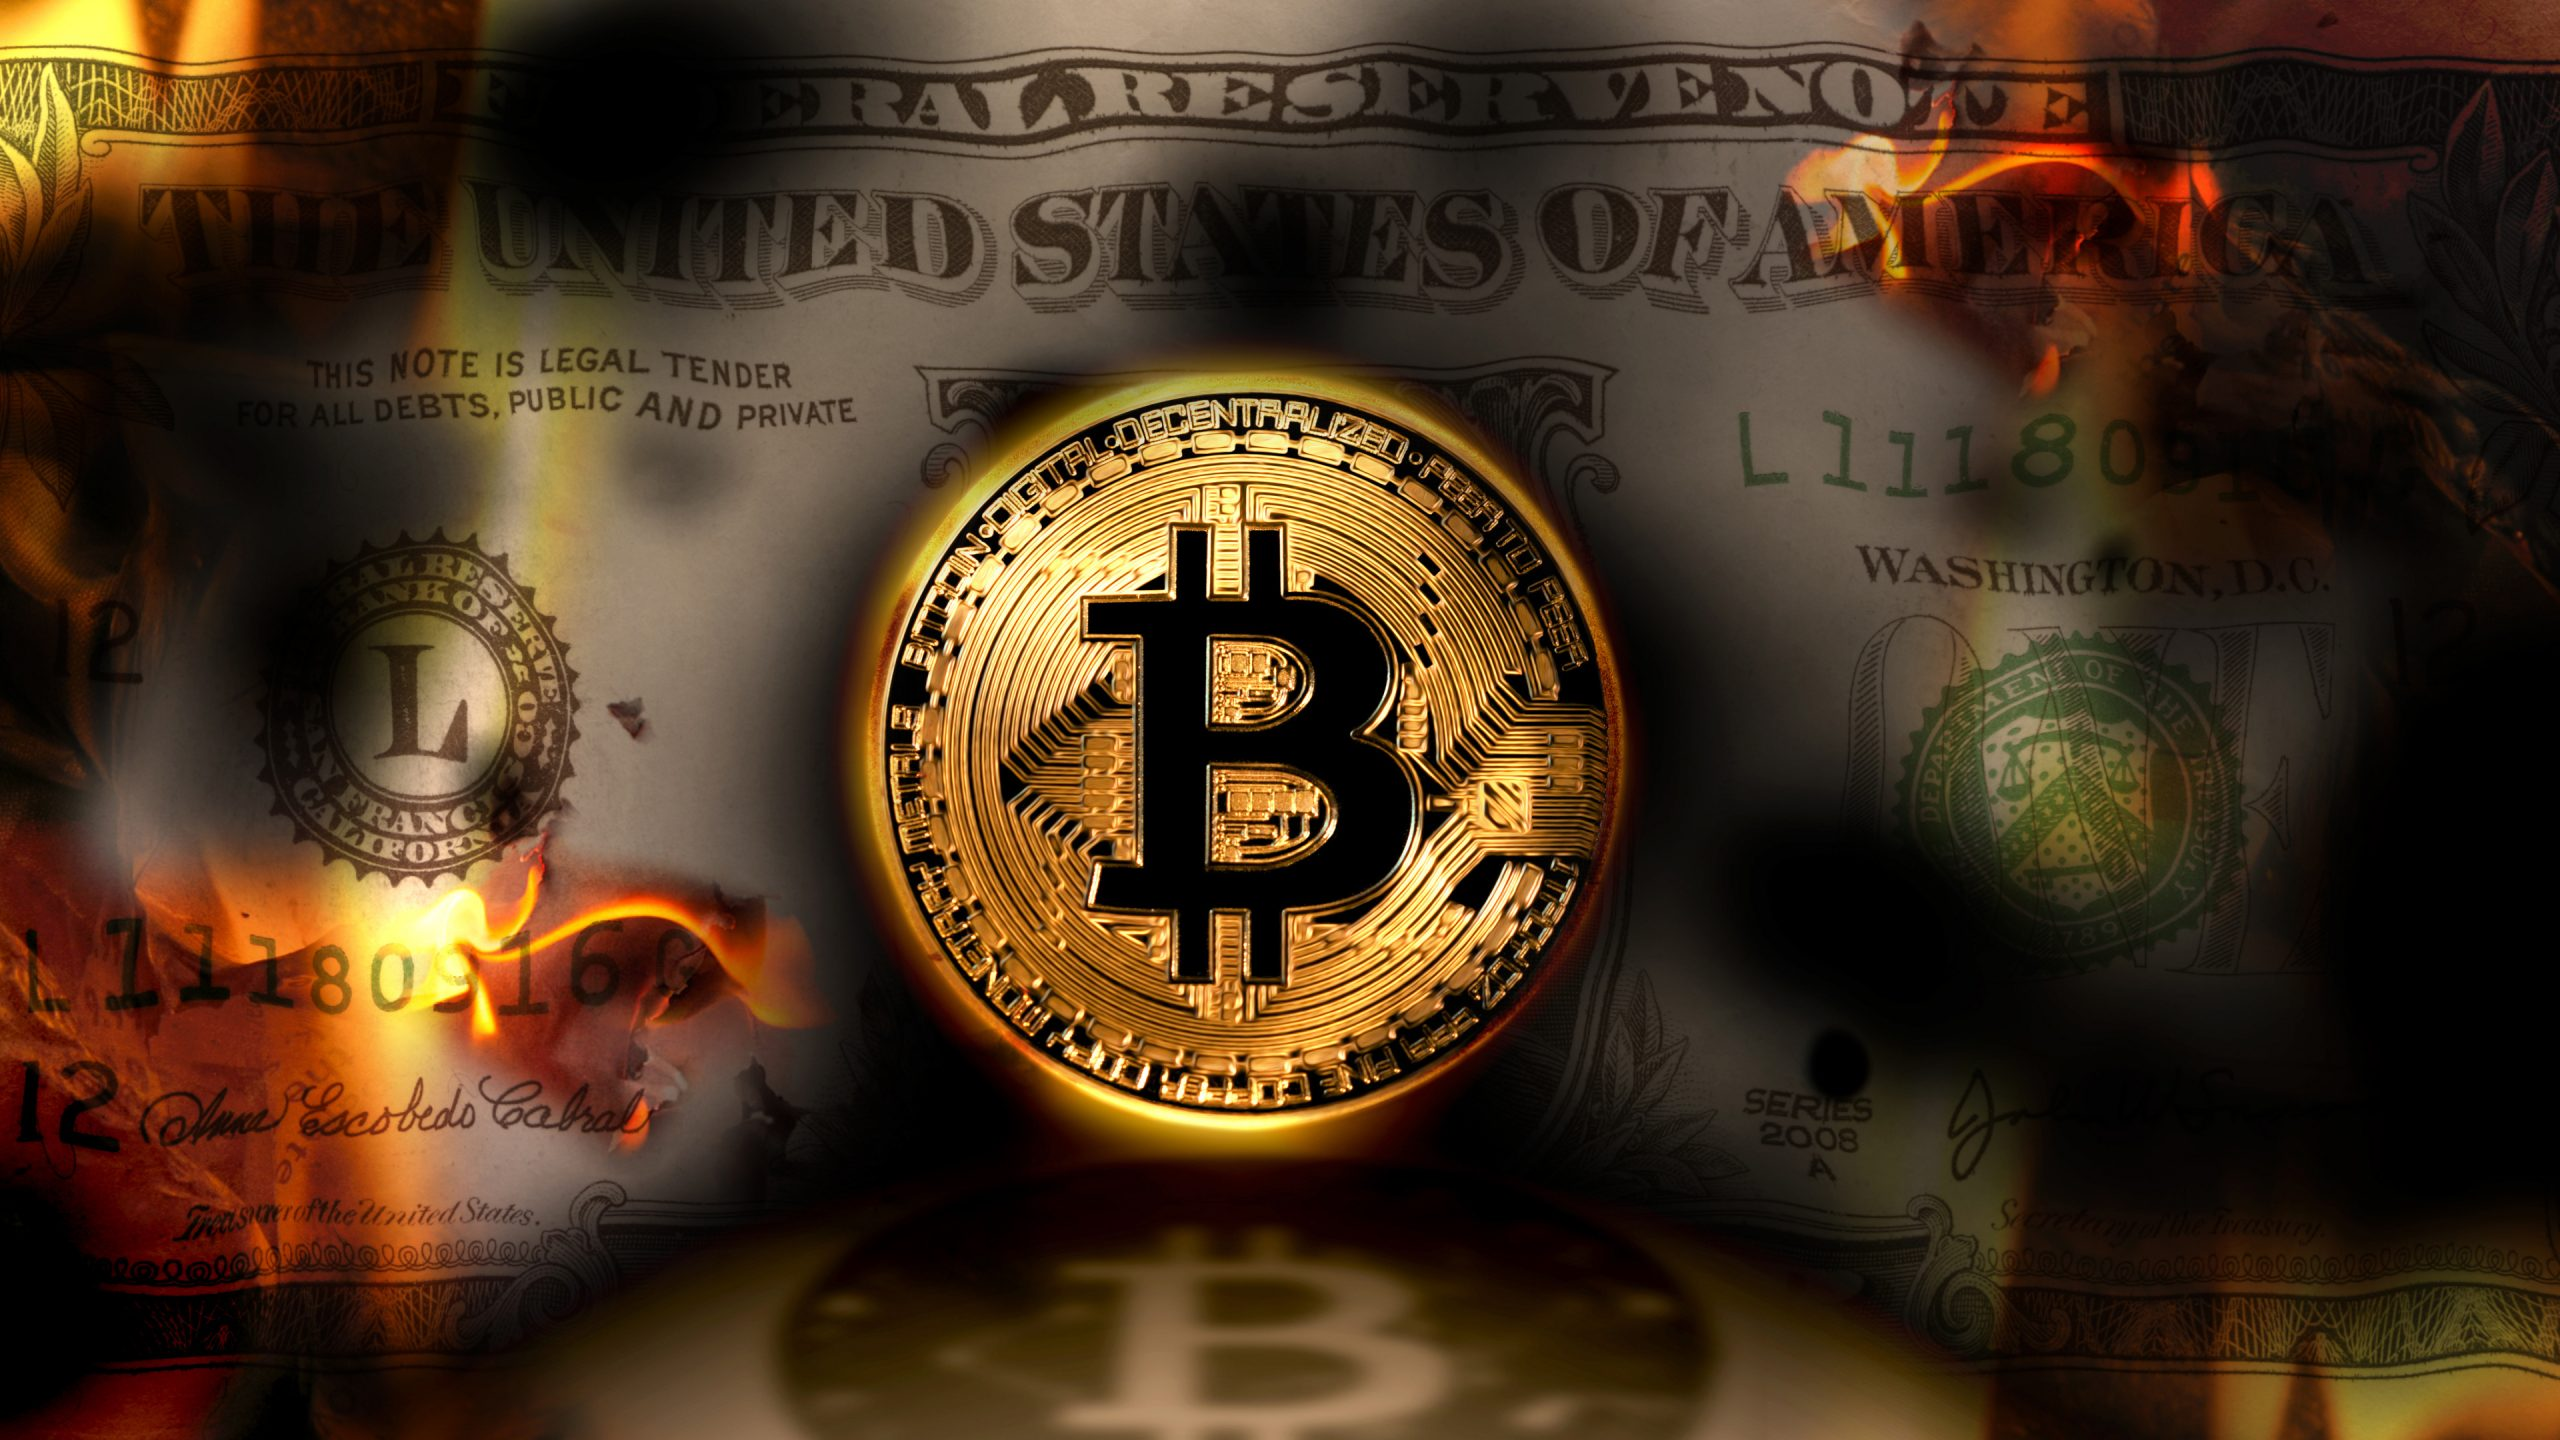 Stablecoins vs Bitcoin - What is better for inflation?